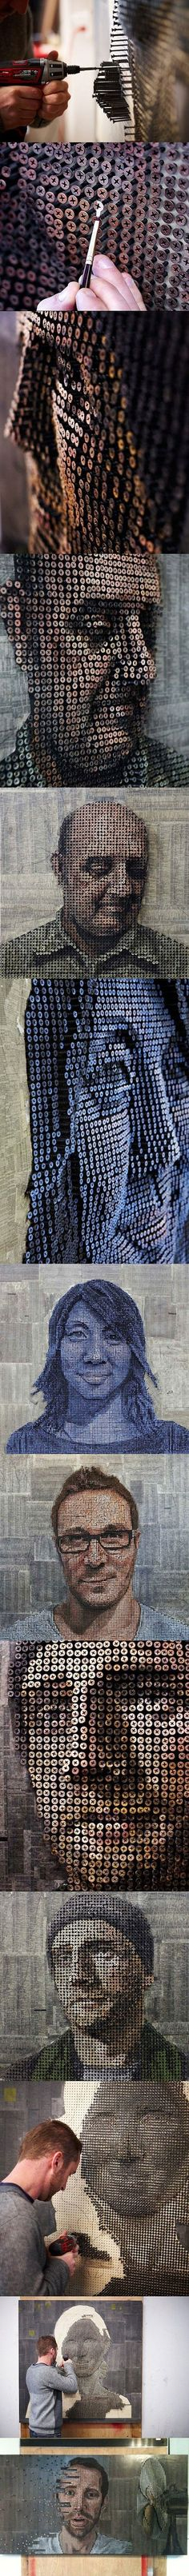 3D Portraits Made Out Of Screws... one of the most unique & interesting mediums Ive ever seen! Way to think outside of the box & run with it! Wow!